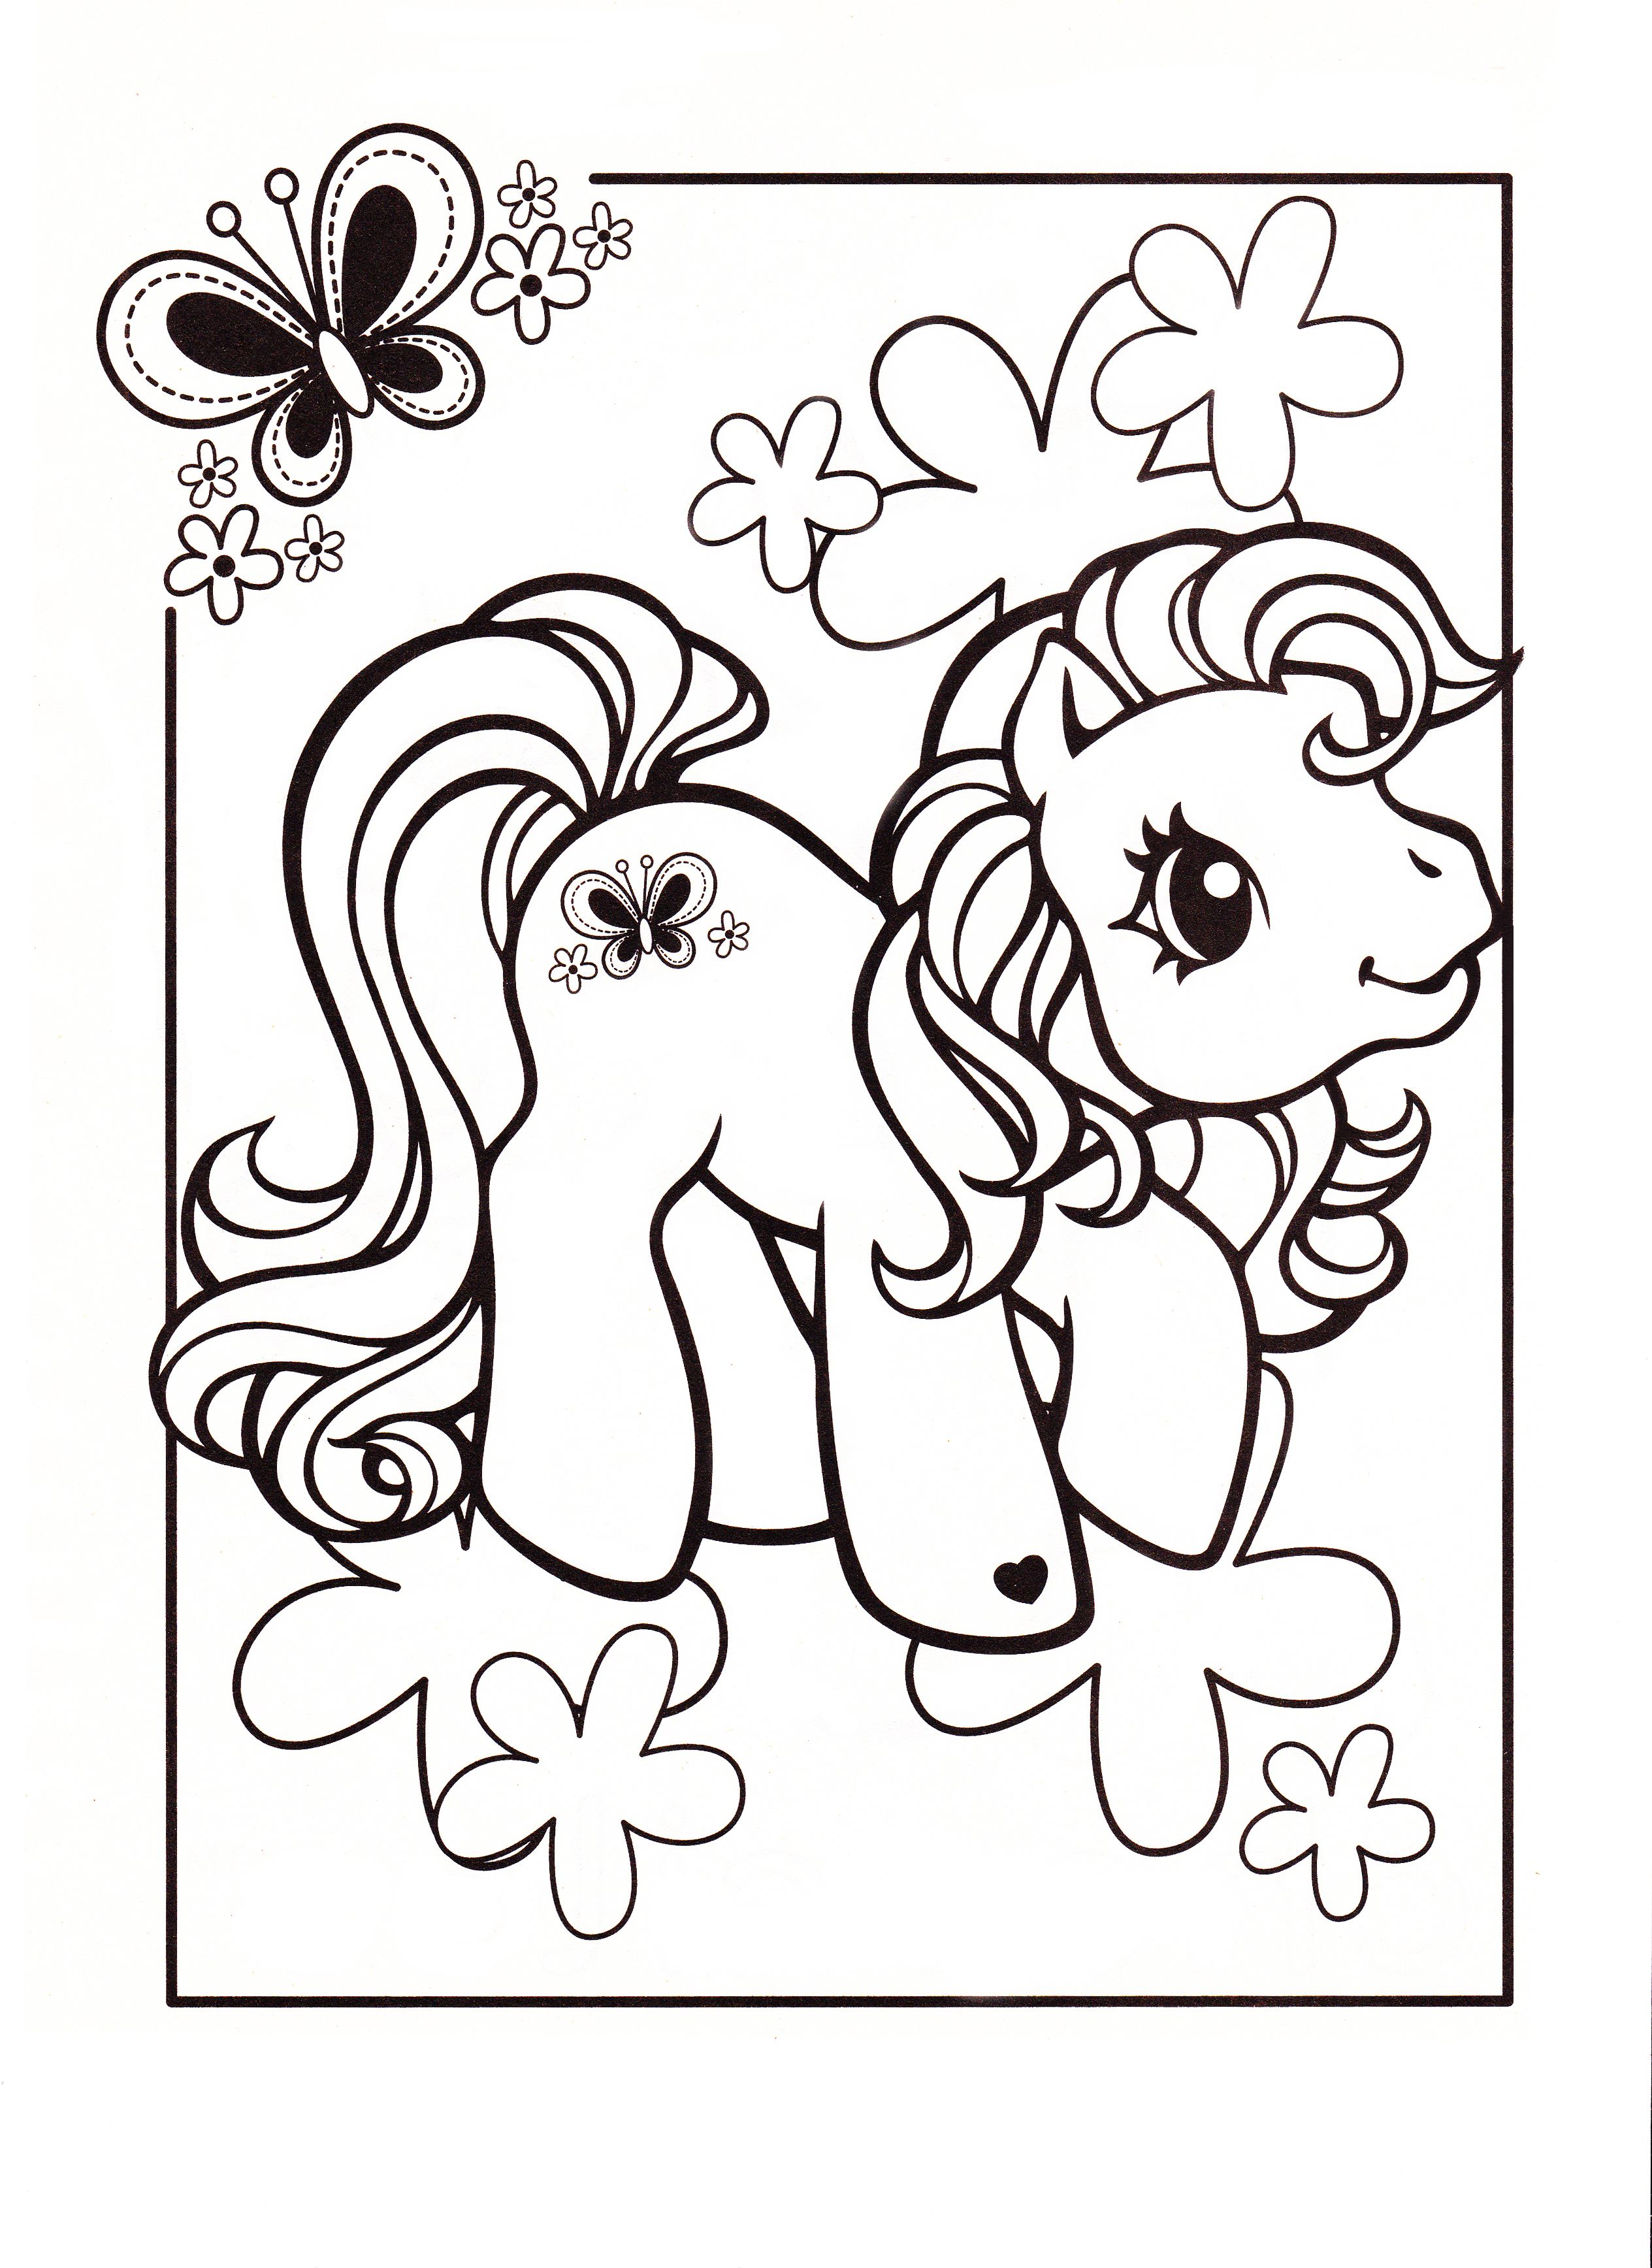 My little pony coloring pages scootaloo - My Little Pony Coloring Page Mlp Scootaloo